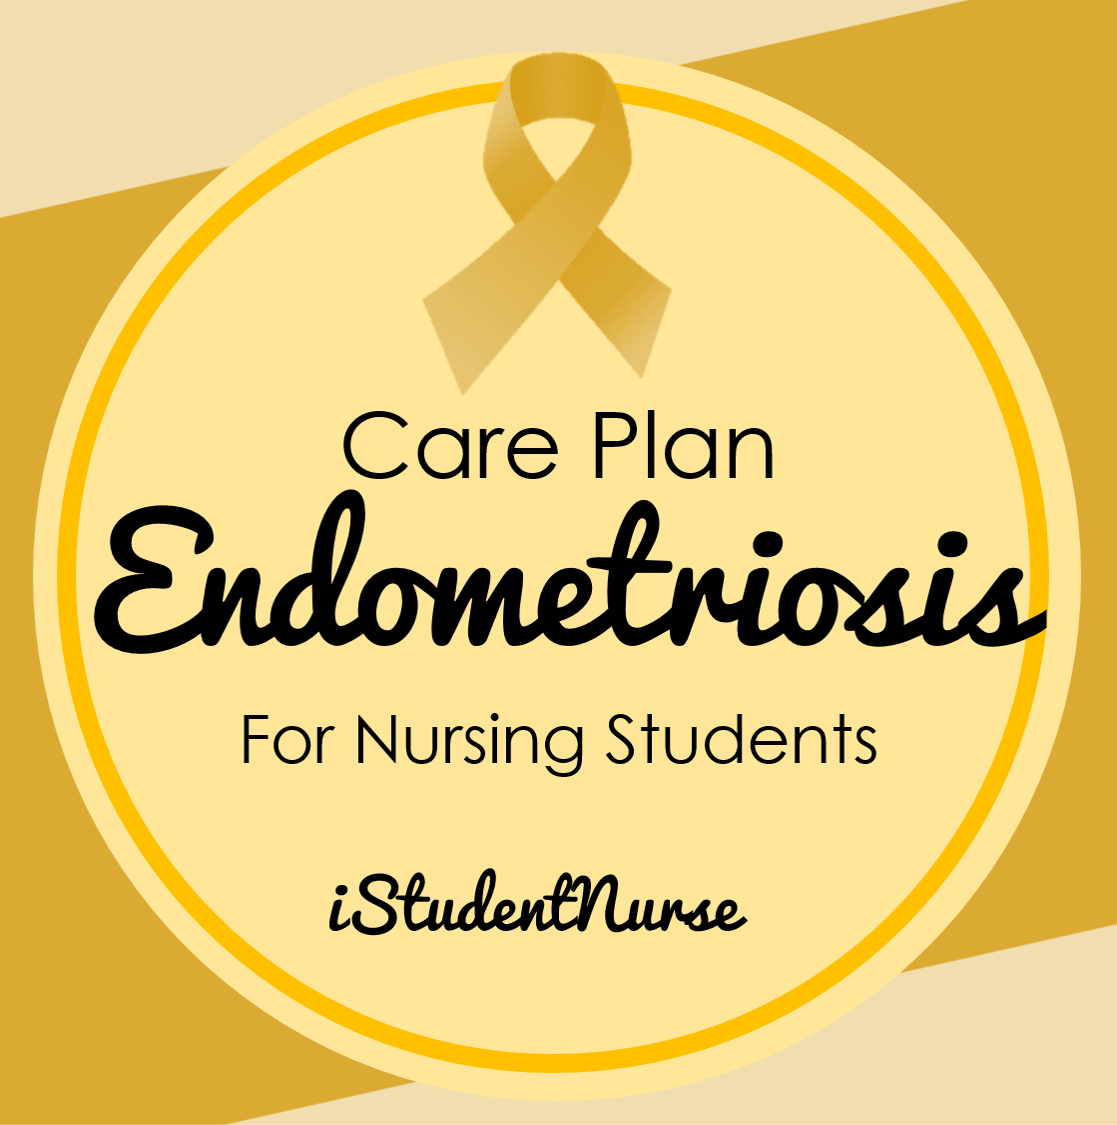 Nursing Care Plan Example For The Patient With Endometriosis